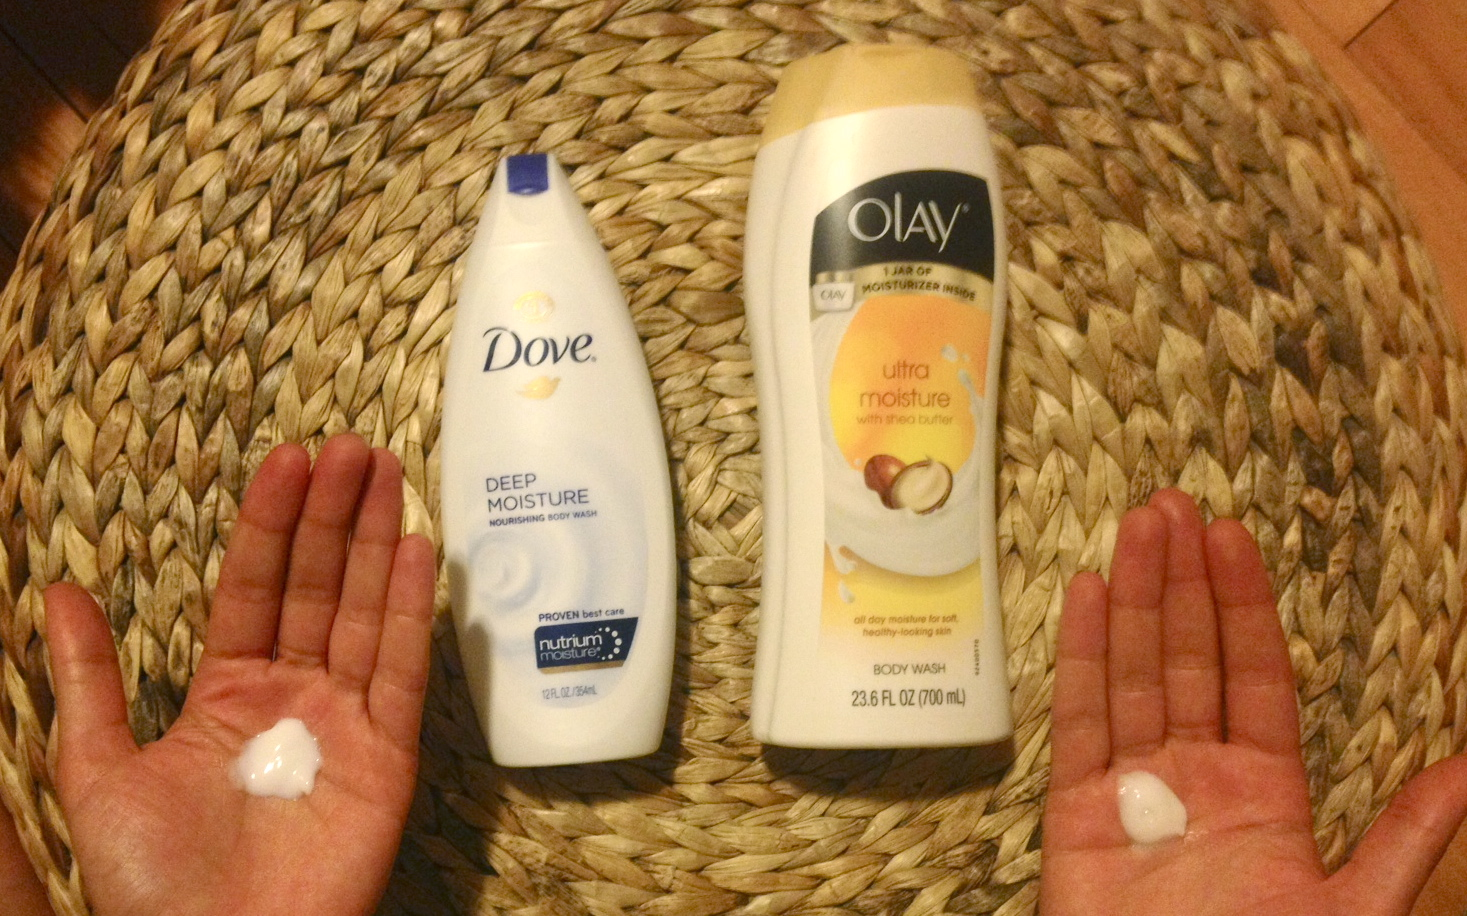 Battle of the Body Washes: Olay Vs. Dove - Pretty Connected